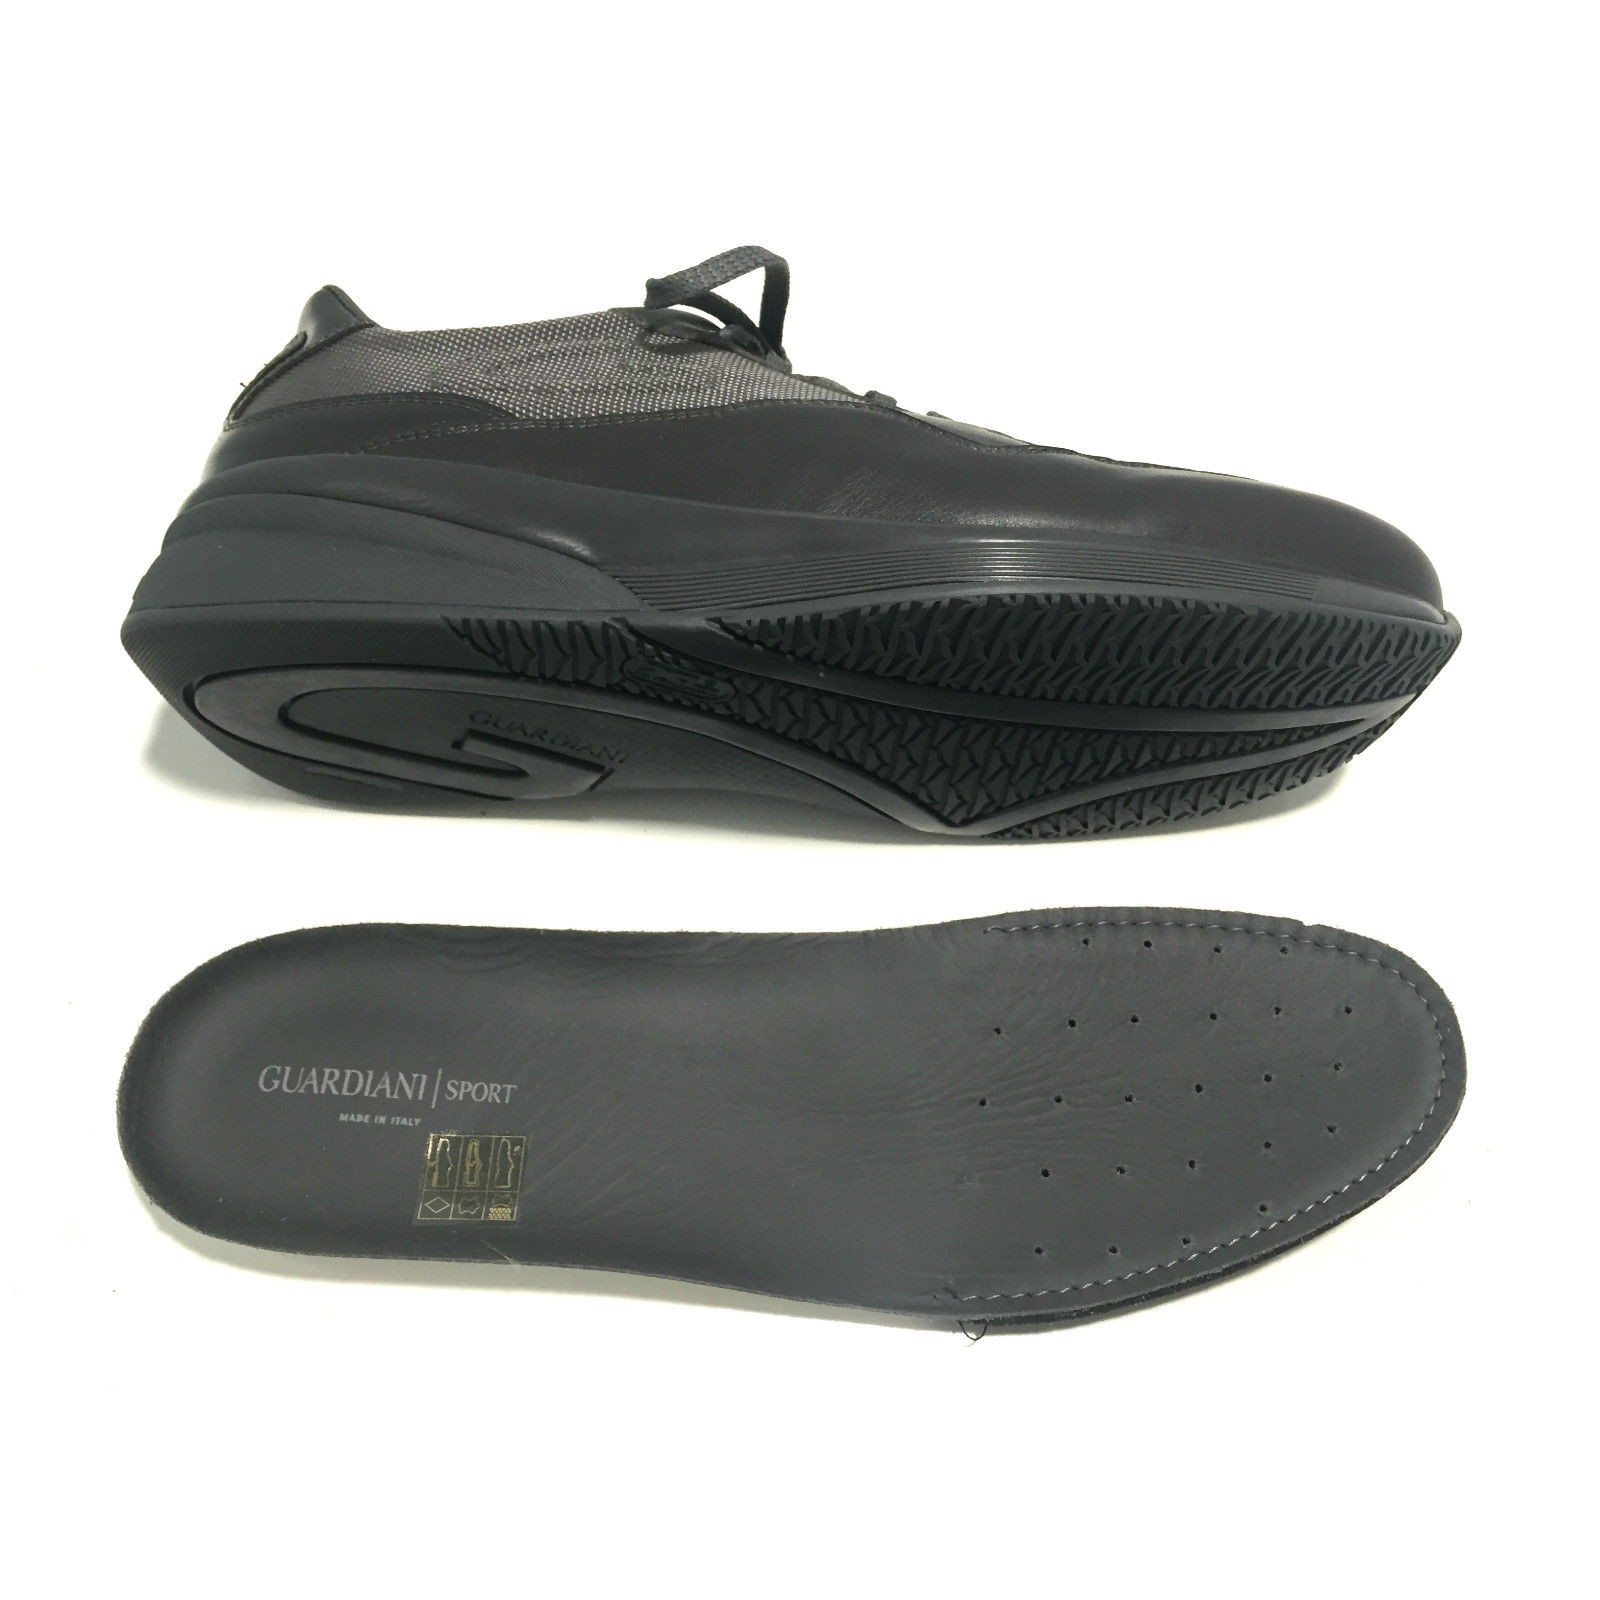 f50449811bec2 ... SCARPE UOMO SNEAKER GUARDIANI SPORT GROVE GREY U16AG10. Previous. Next.  In saldo! Previous